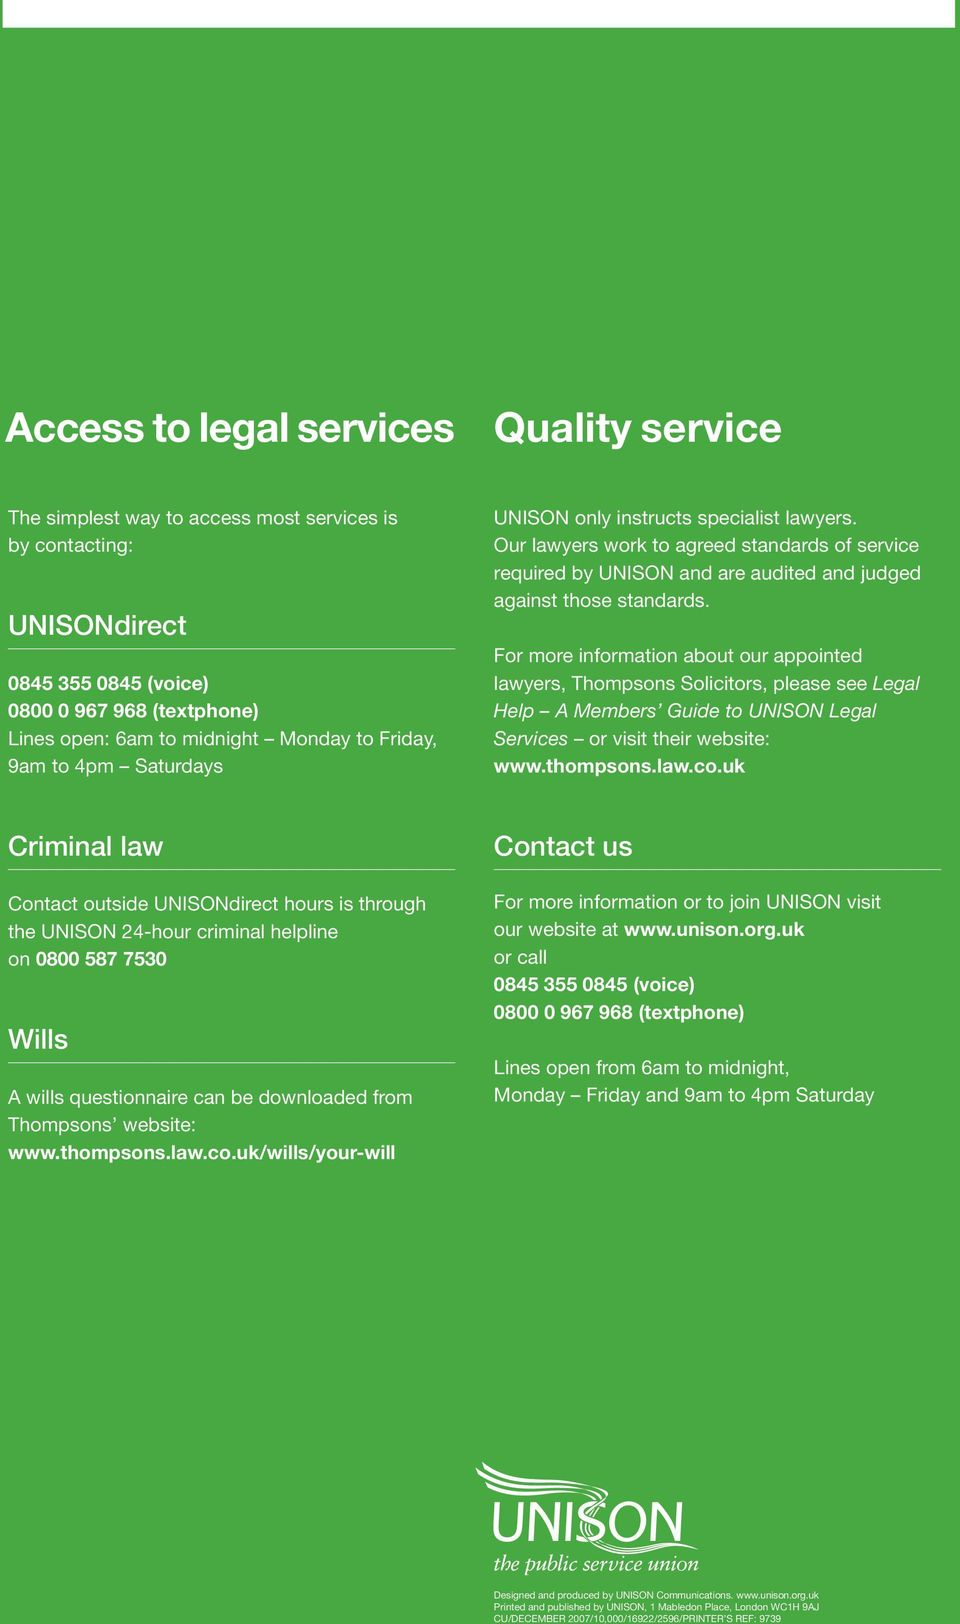 For more information about our appointed lawyers, Thompsons Solicitors, please see Legal Help A Members Guide to UNISON Legal Services or visit their website: www.thompsons.law.co.